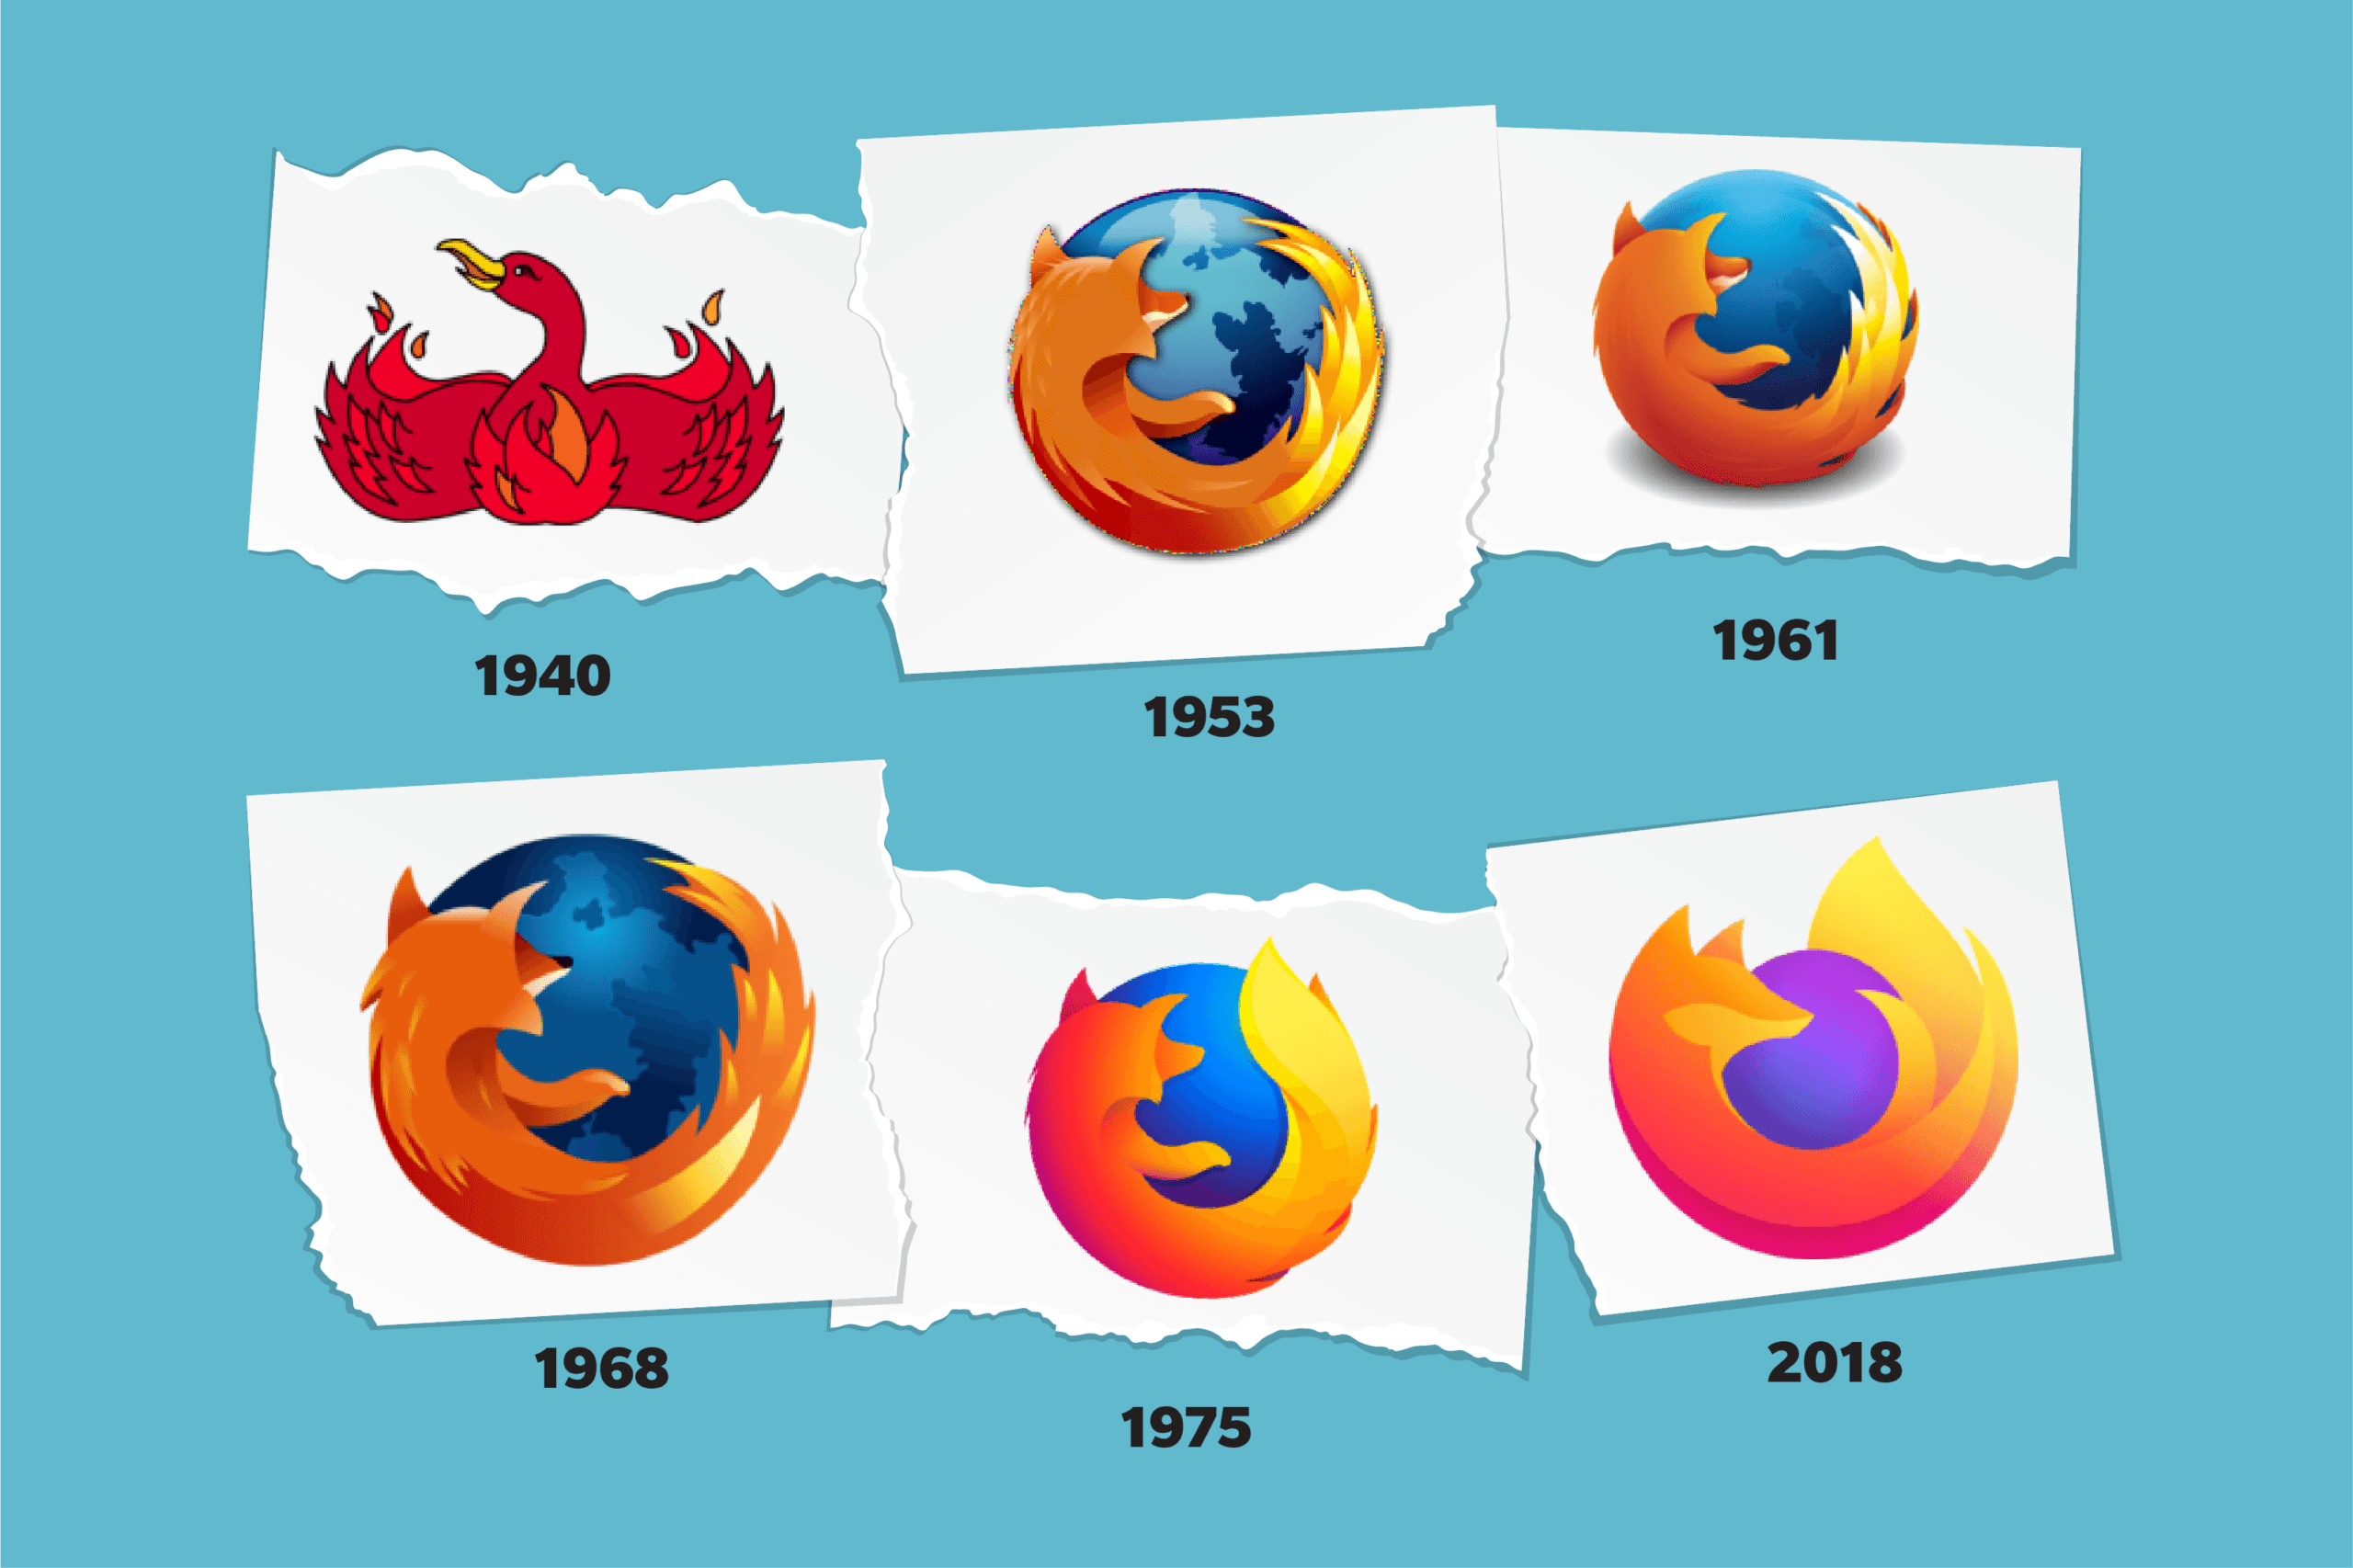 Images of Firefox logos through time